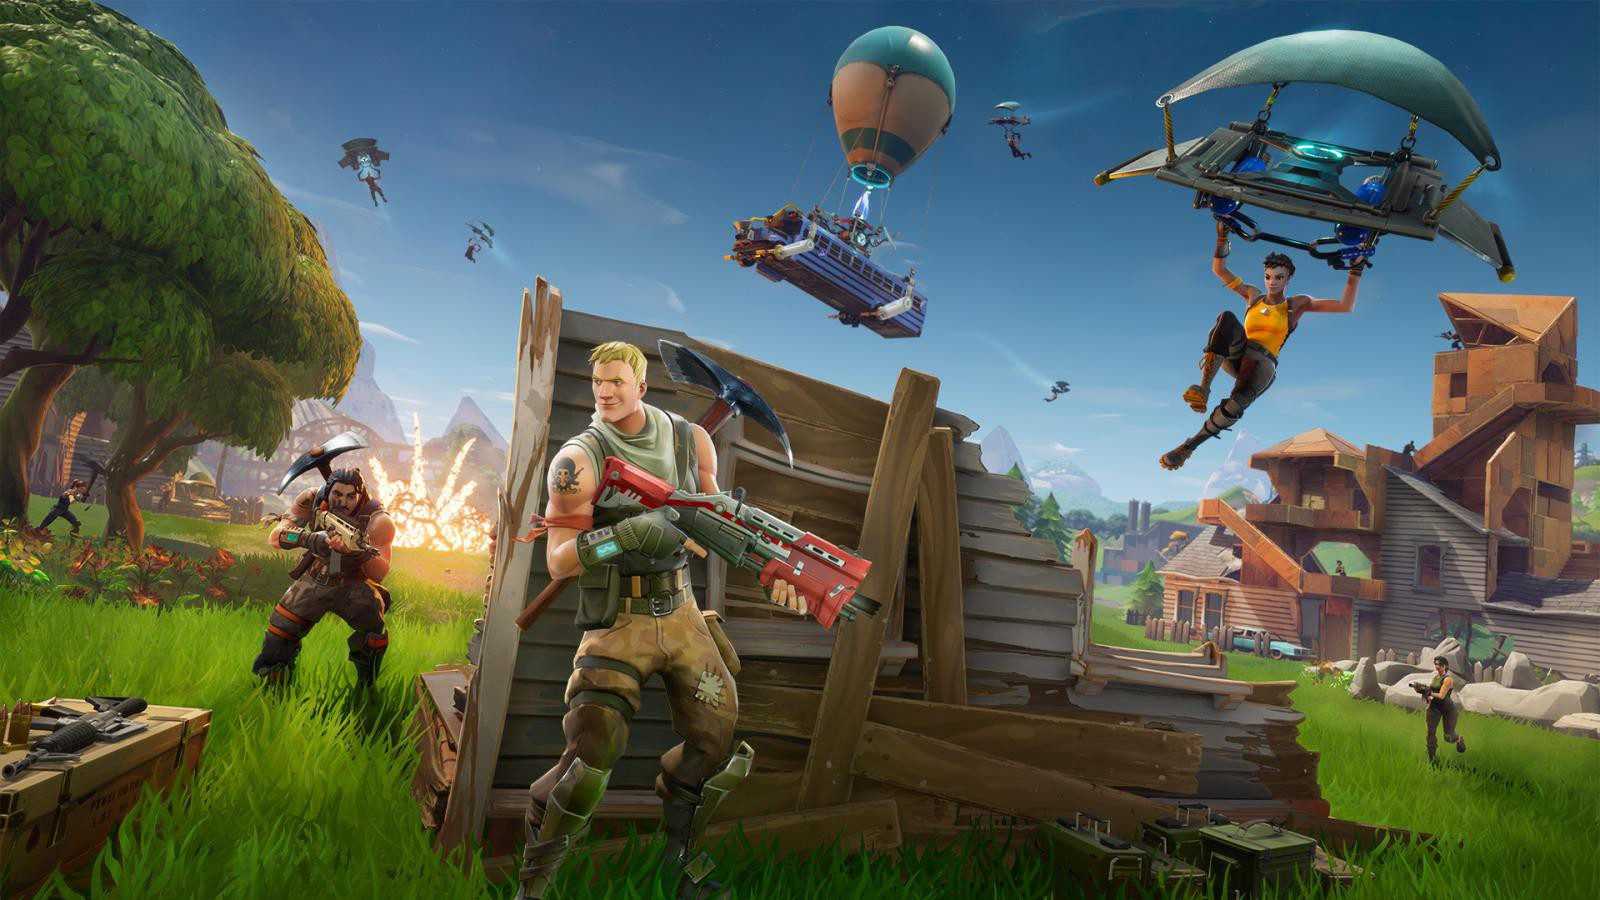 fortnite game guns free download online for mobile ios and android